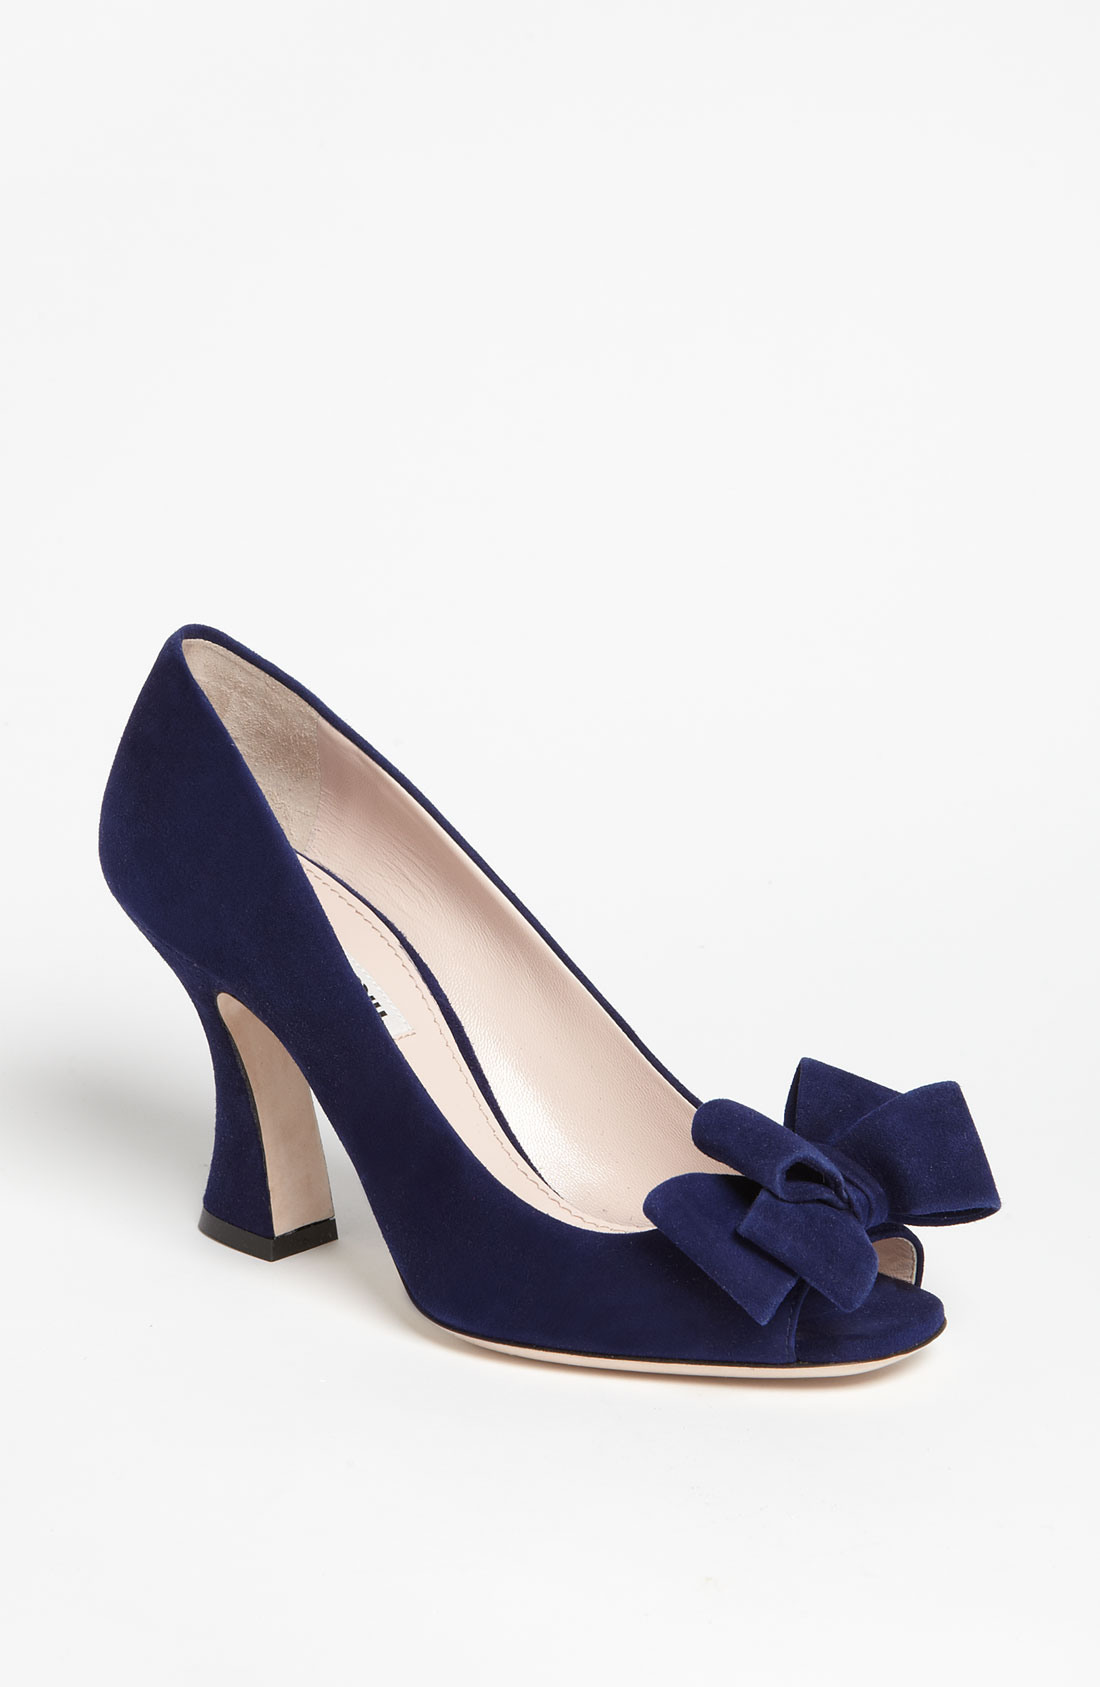 Nordstrom Shoes Womens Pumps